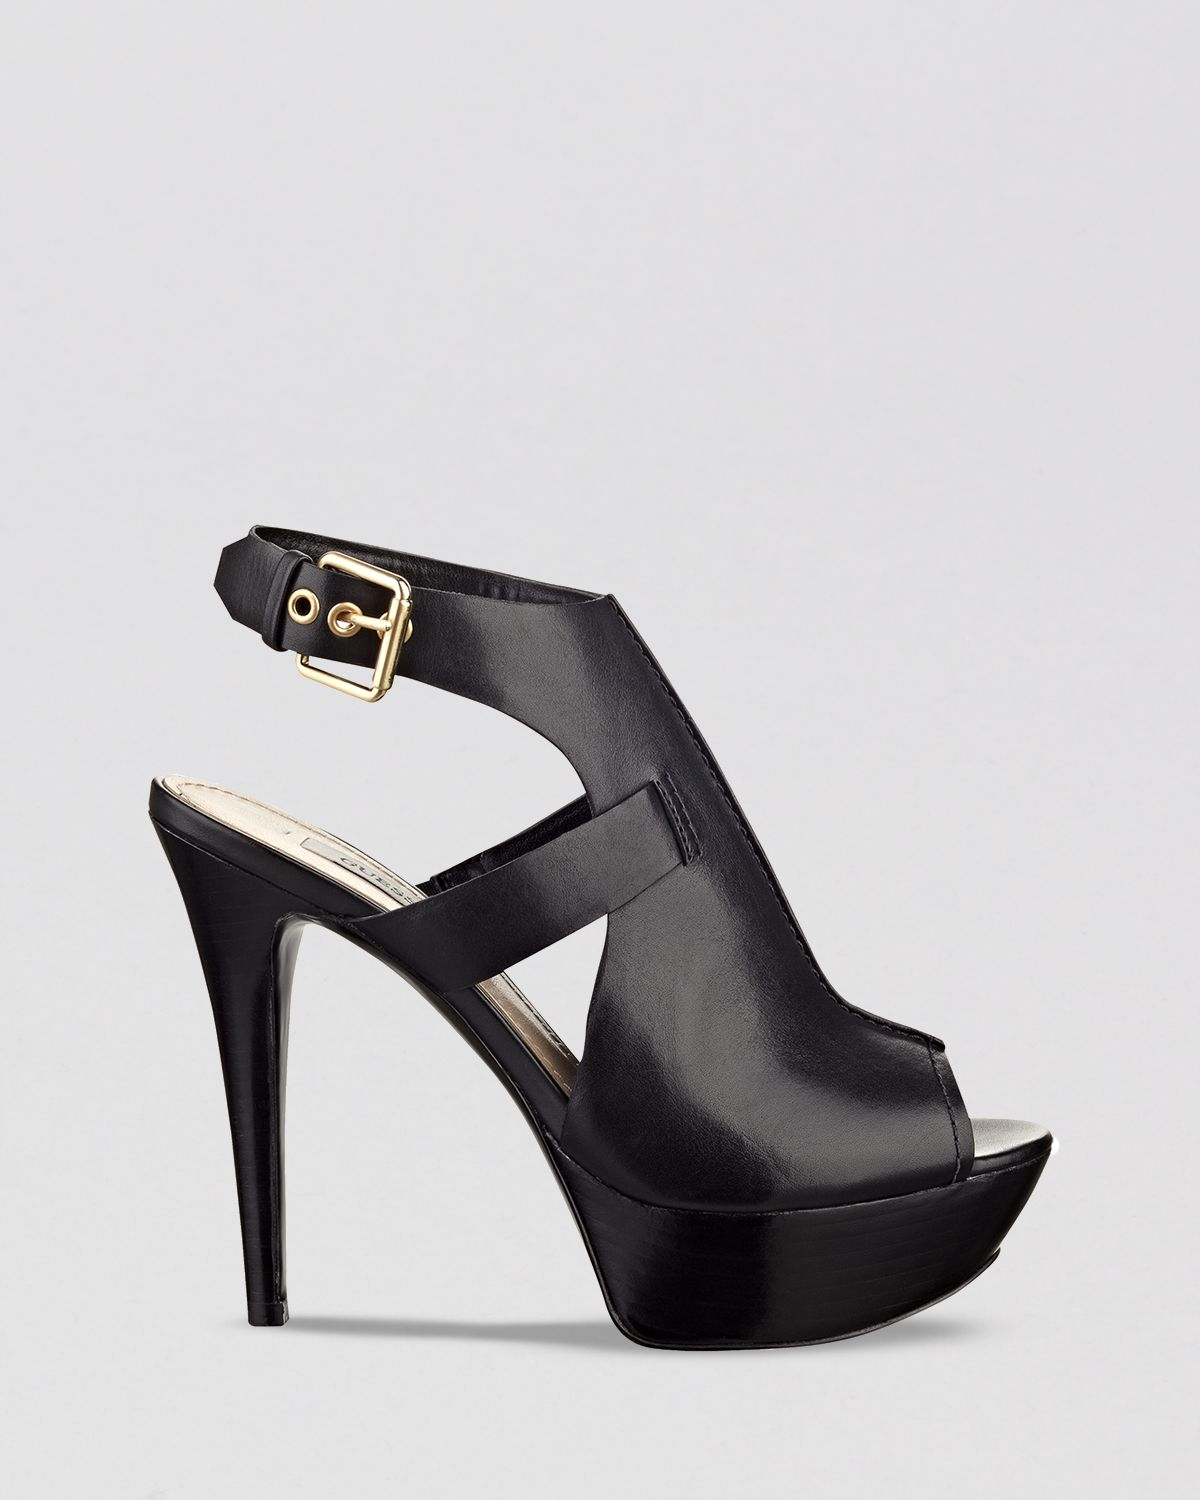 c5071a745a1 Lyst - Guess Open Toe Sandals Ofria High Heel in Black